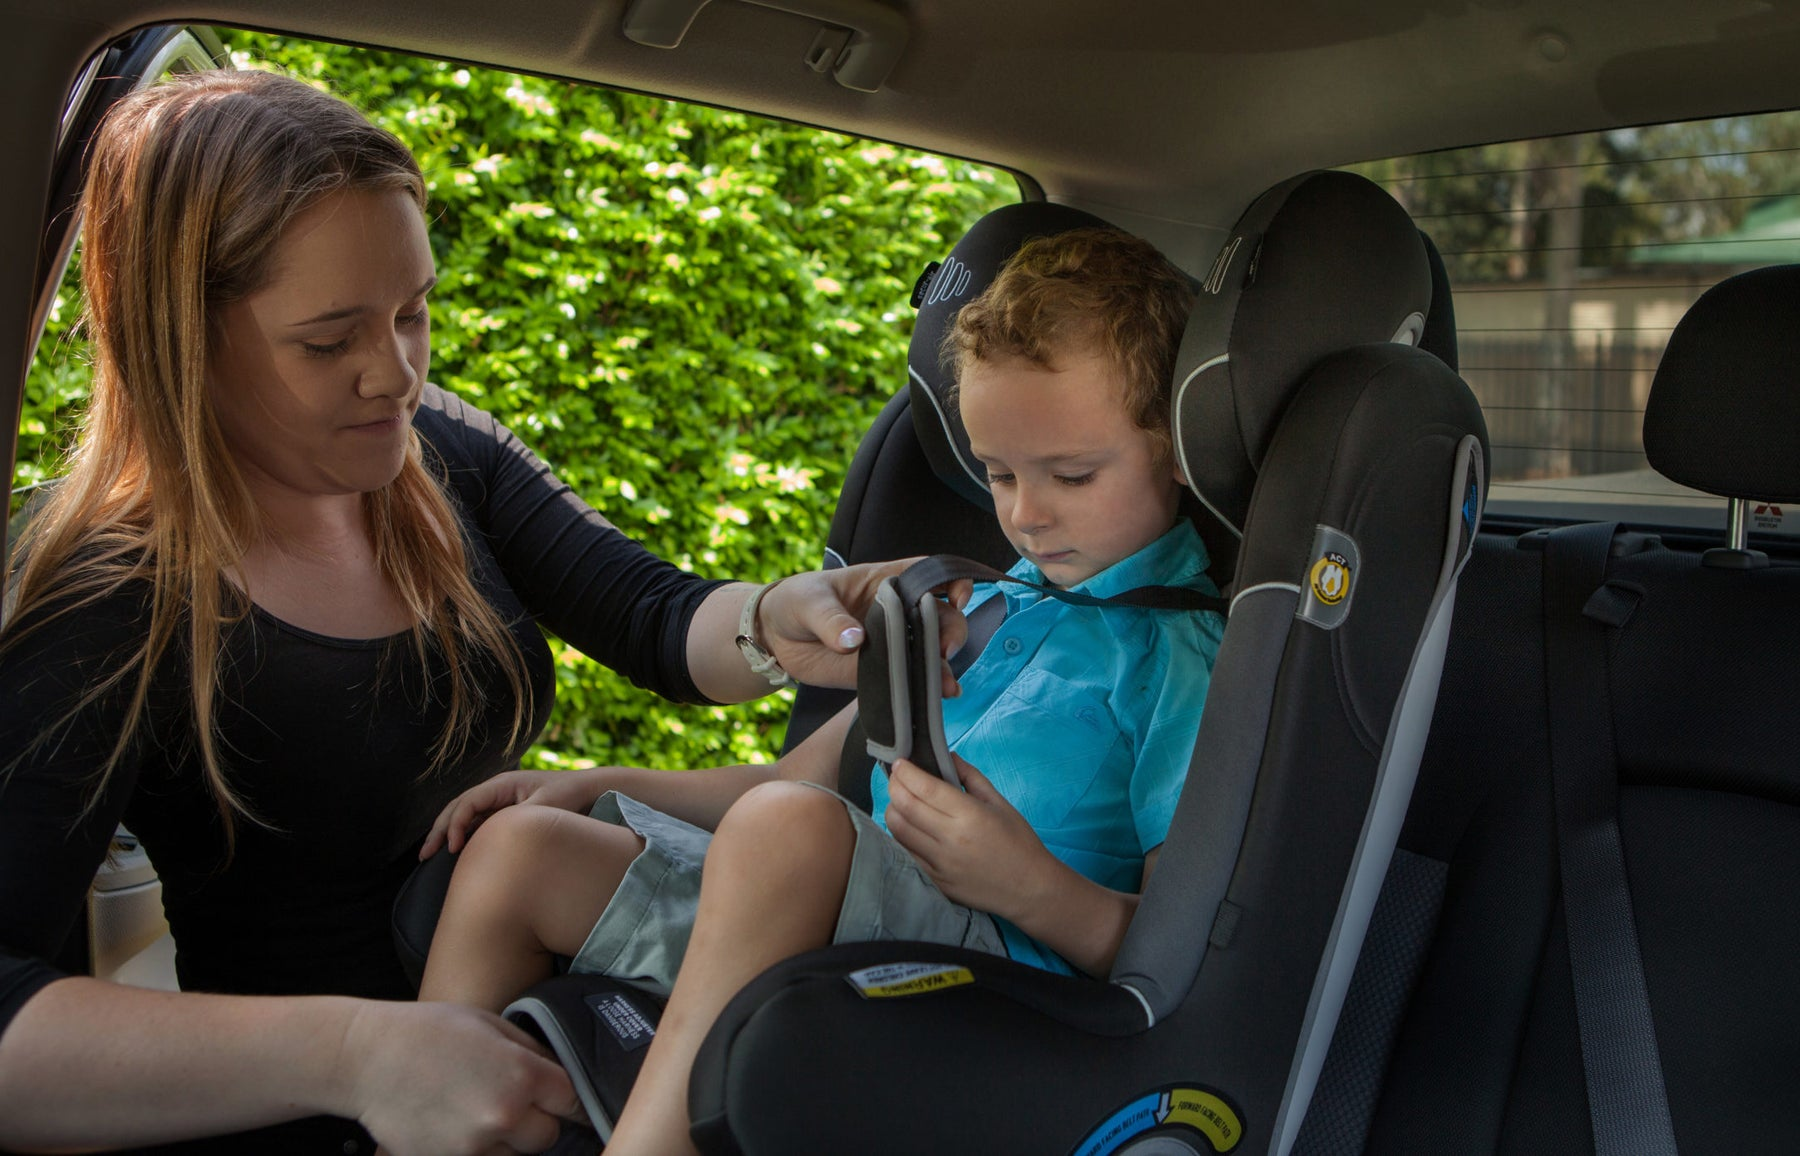 You've bought a new car seat - Now what?